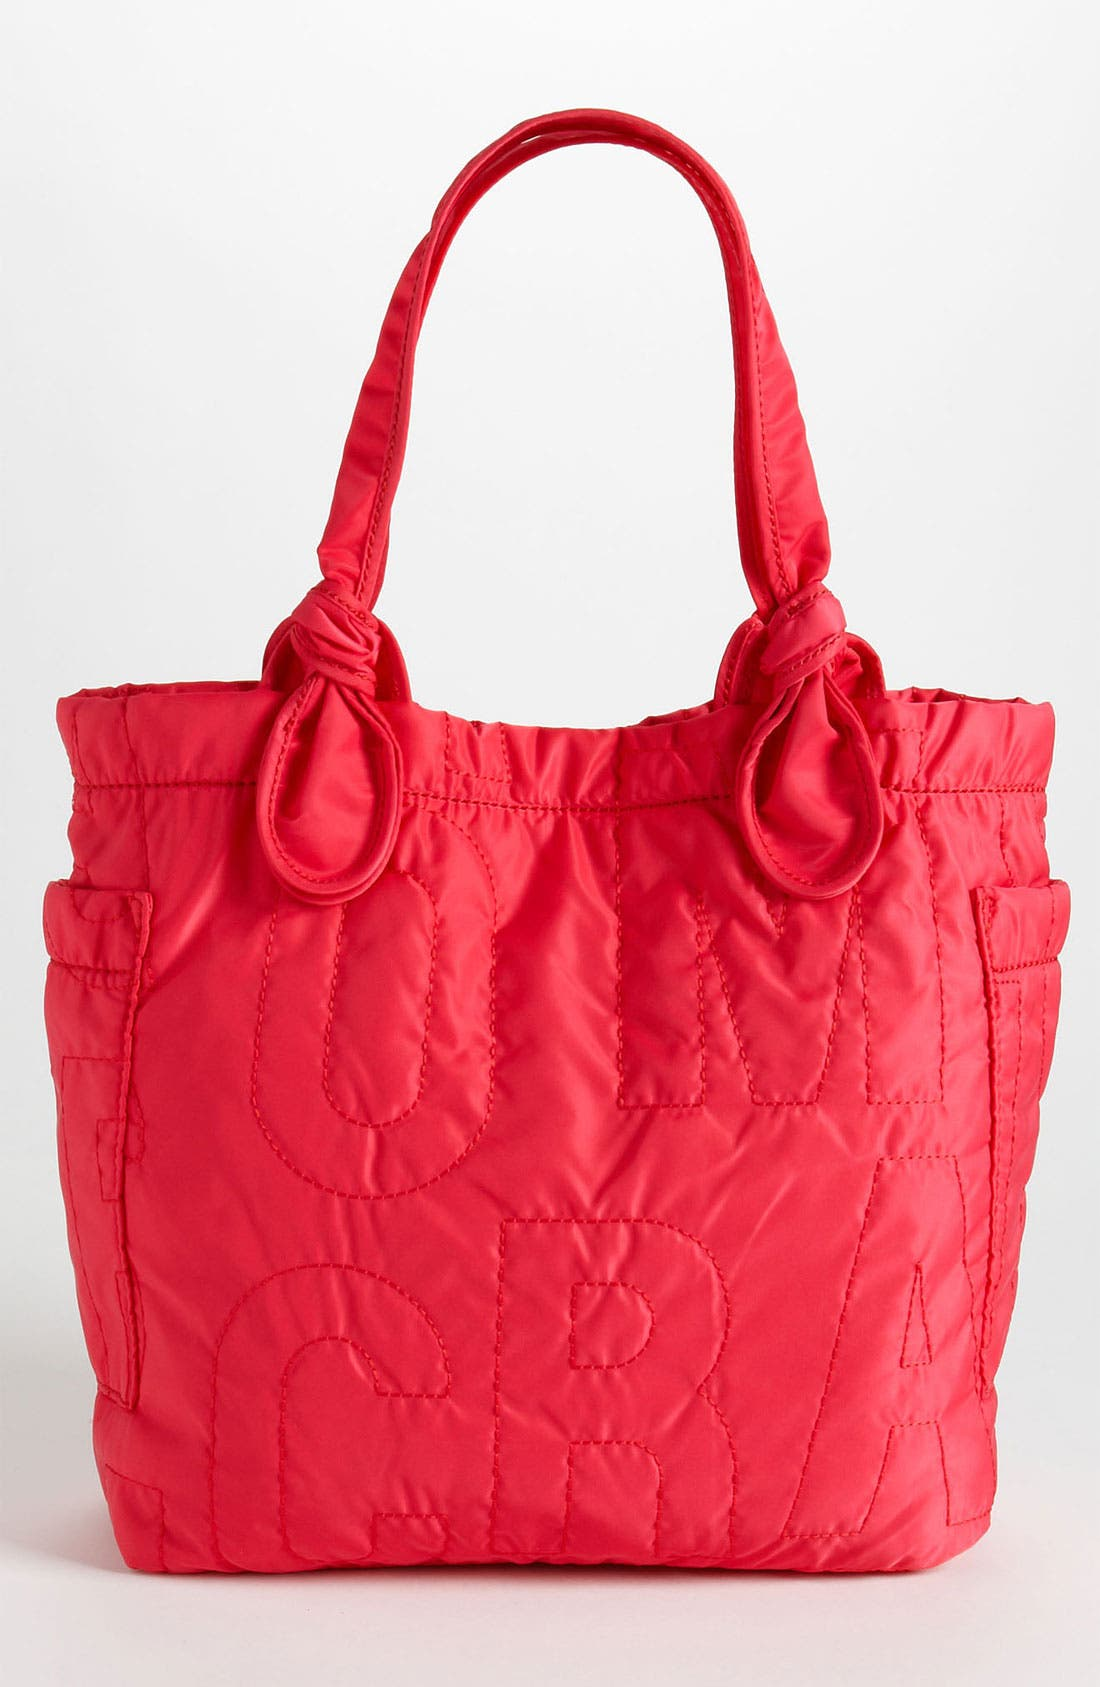 MARC BY MARC JACOBS 'Pretty Nylon - Lil Tate' Tote,                             Alternate thumbnail 2, color,                             628